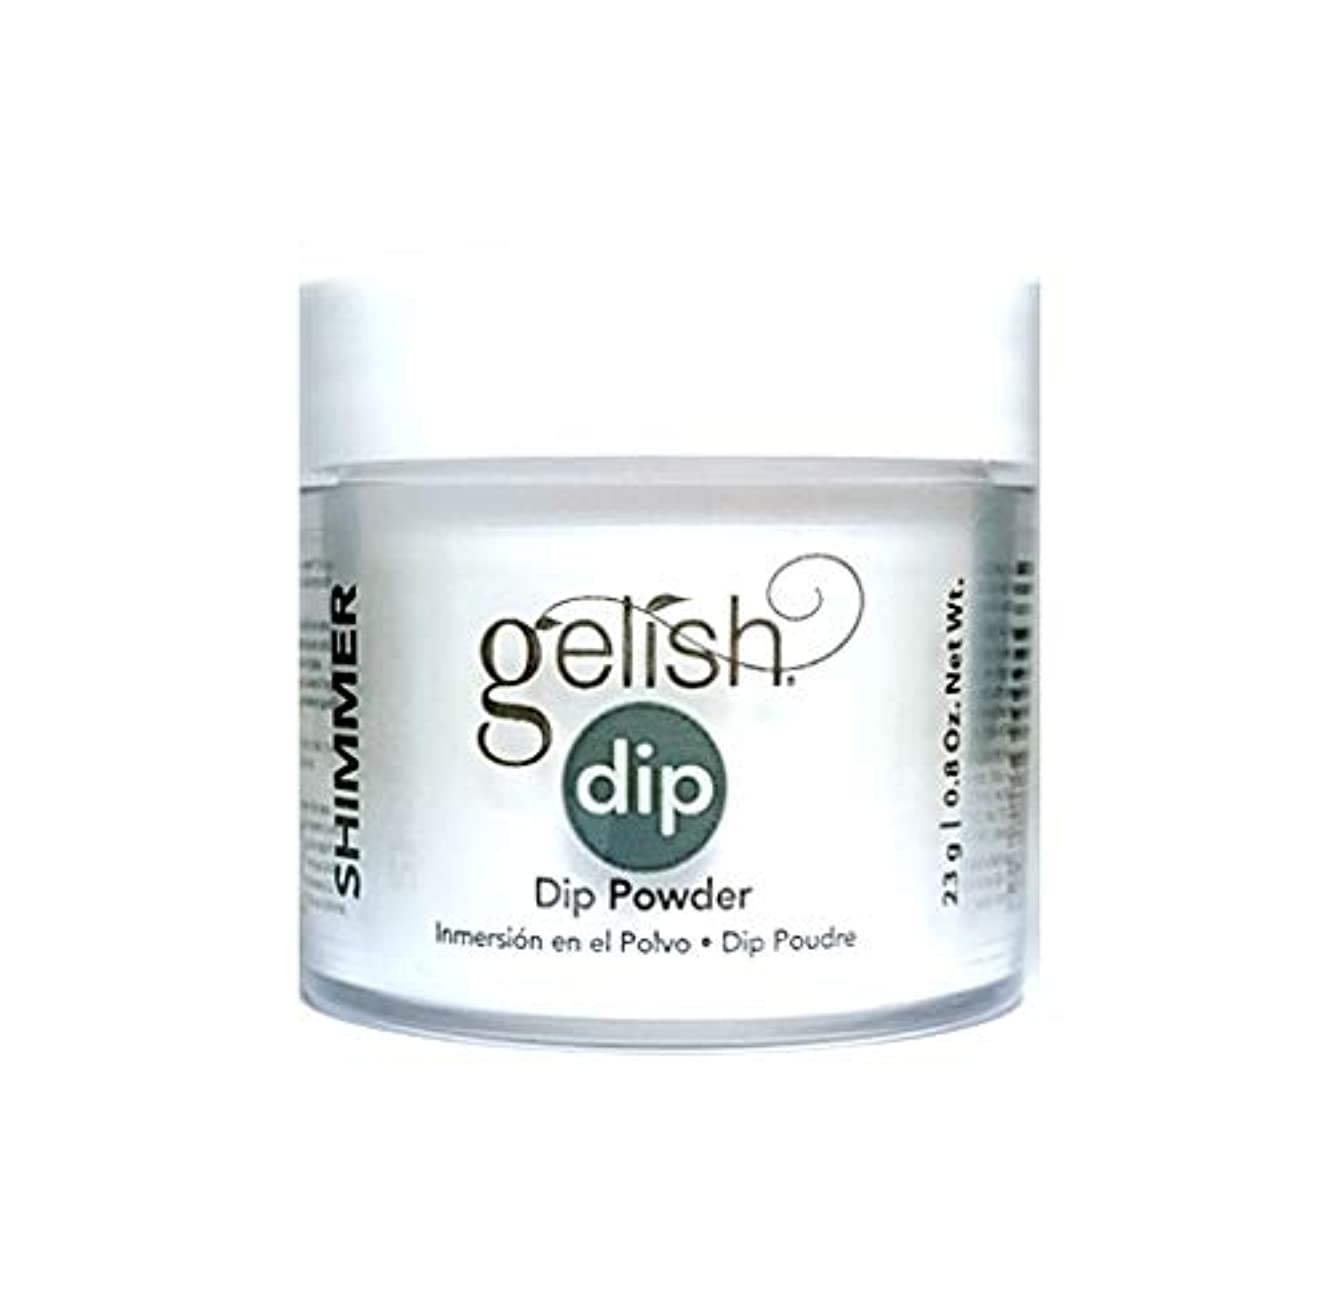 ルビーどうしたの彫るHarmony Gelish - Dip Powder - Izzy Wizzy, Let's Get Busy - 23g / 0.8oz